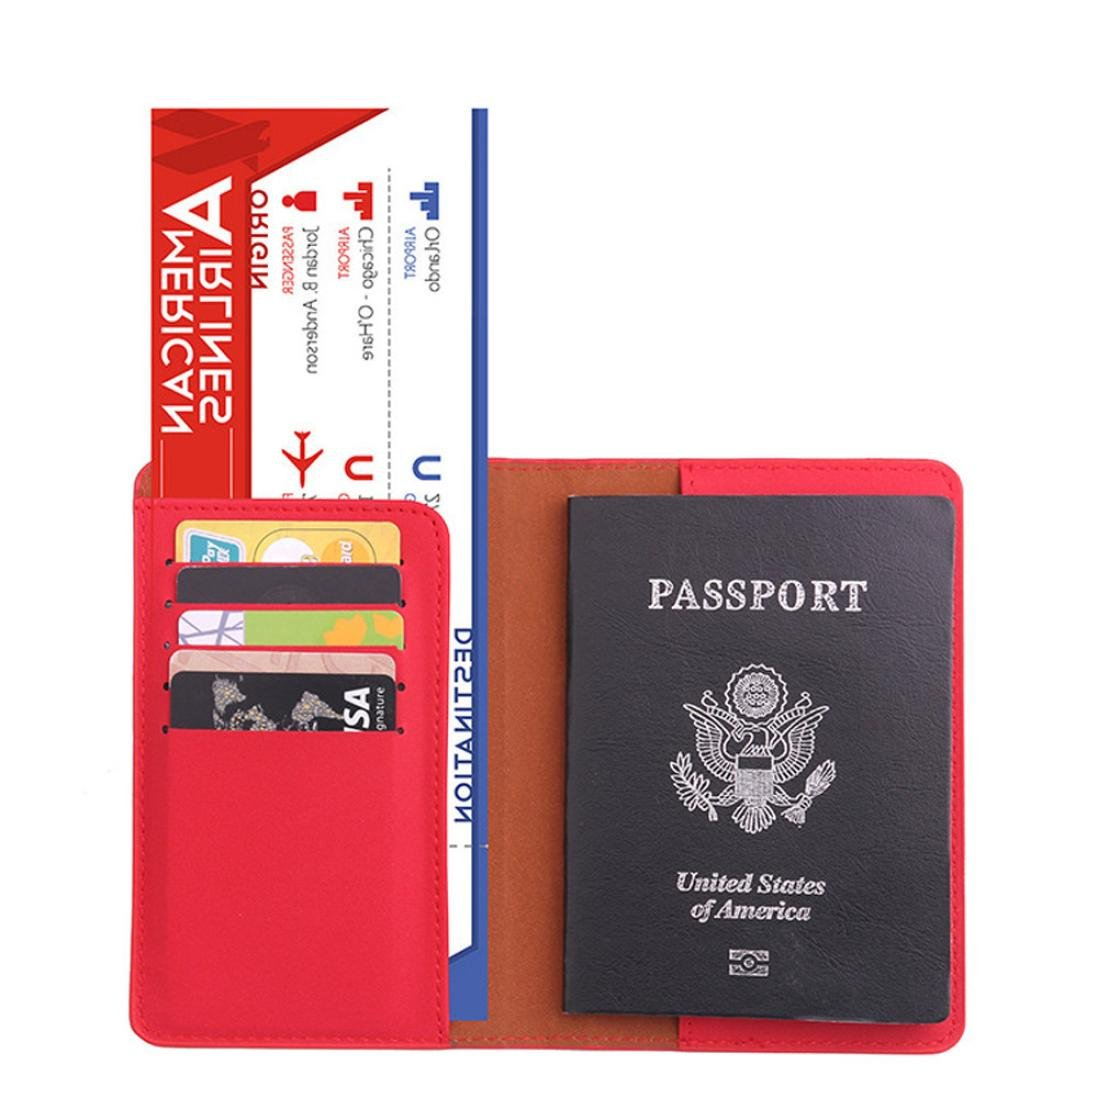 Oldeagle Dedicated Nice Travel Passport ID Card Cover Storage Holder Case Protector Organizer (A)